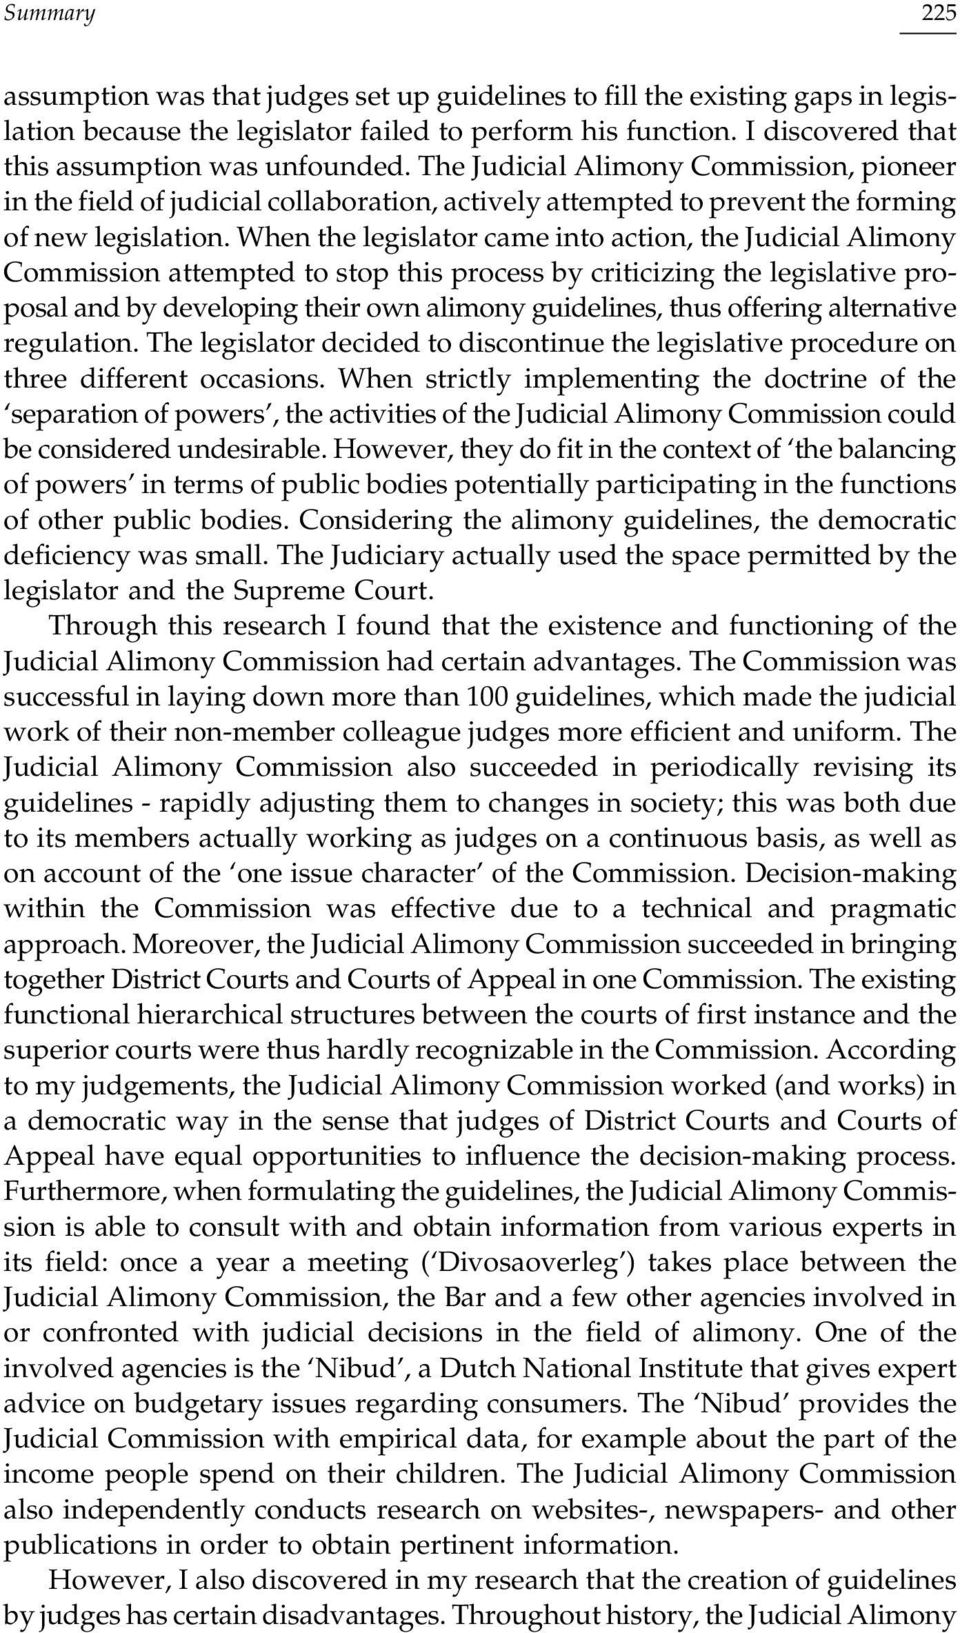 When the legislator came into action, the Judicial Alimony Commission attempted to stop this process by criticizing the legislative proposal and by developing their own alimony guidelines, thus